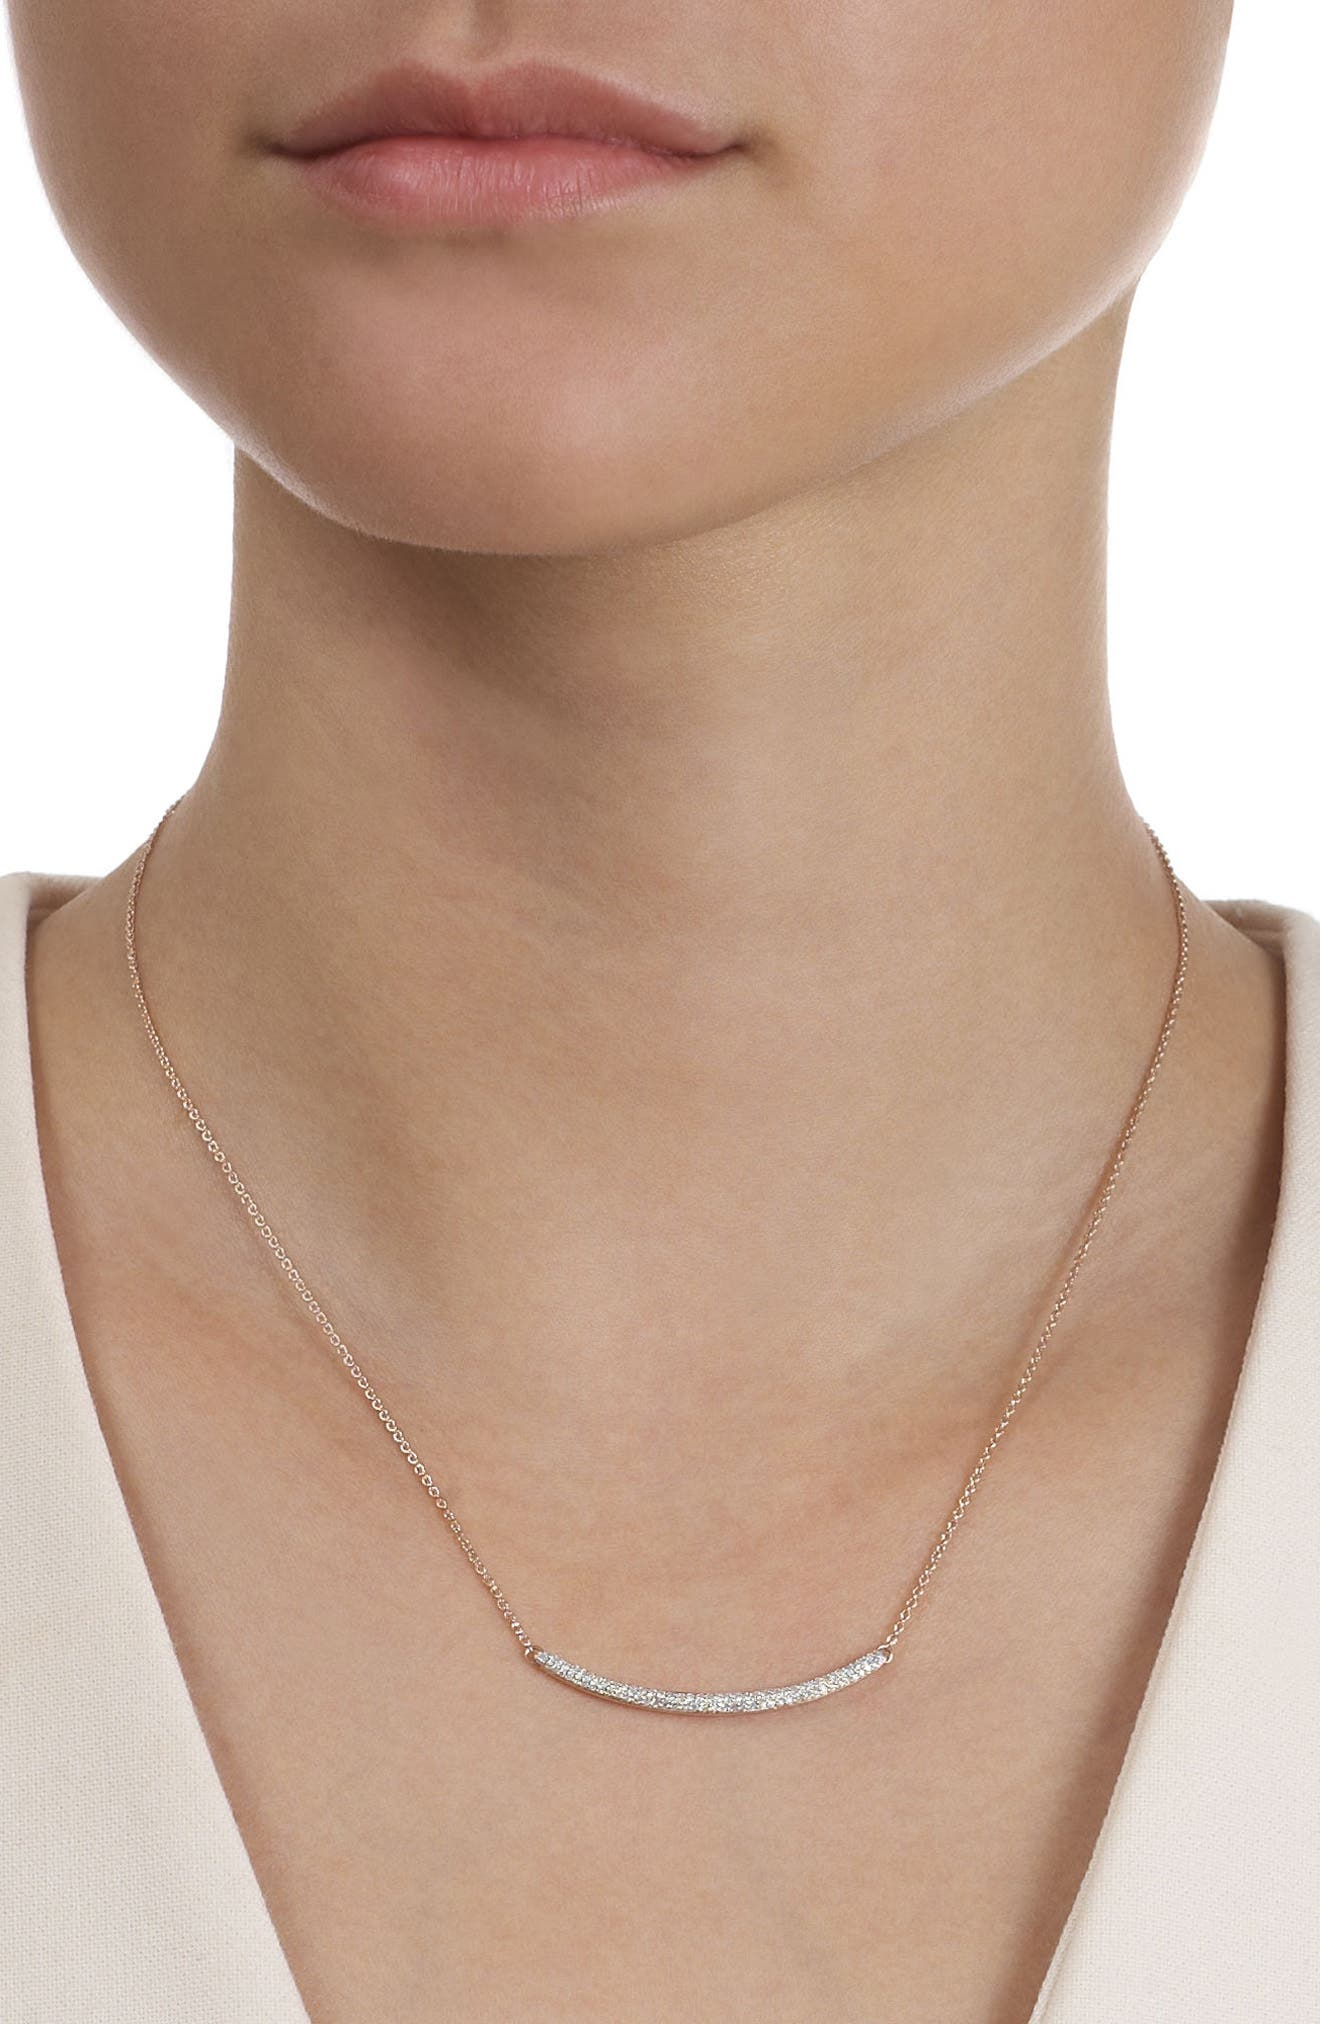 Skinny Diamond Necklace,                             Alternate thumbnail 4, color,                             ROSE GOLD